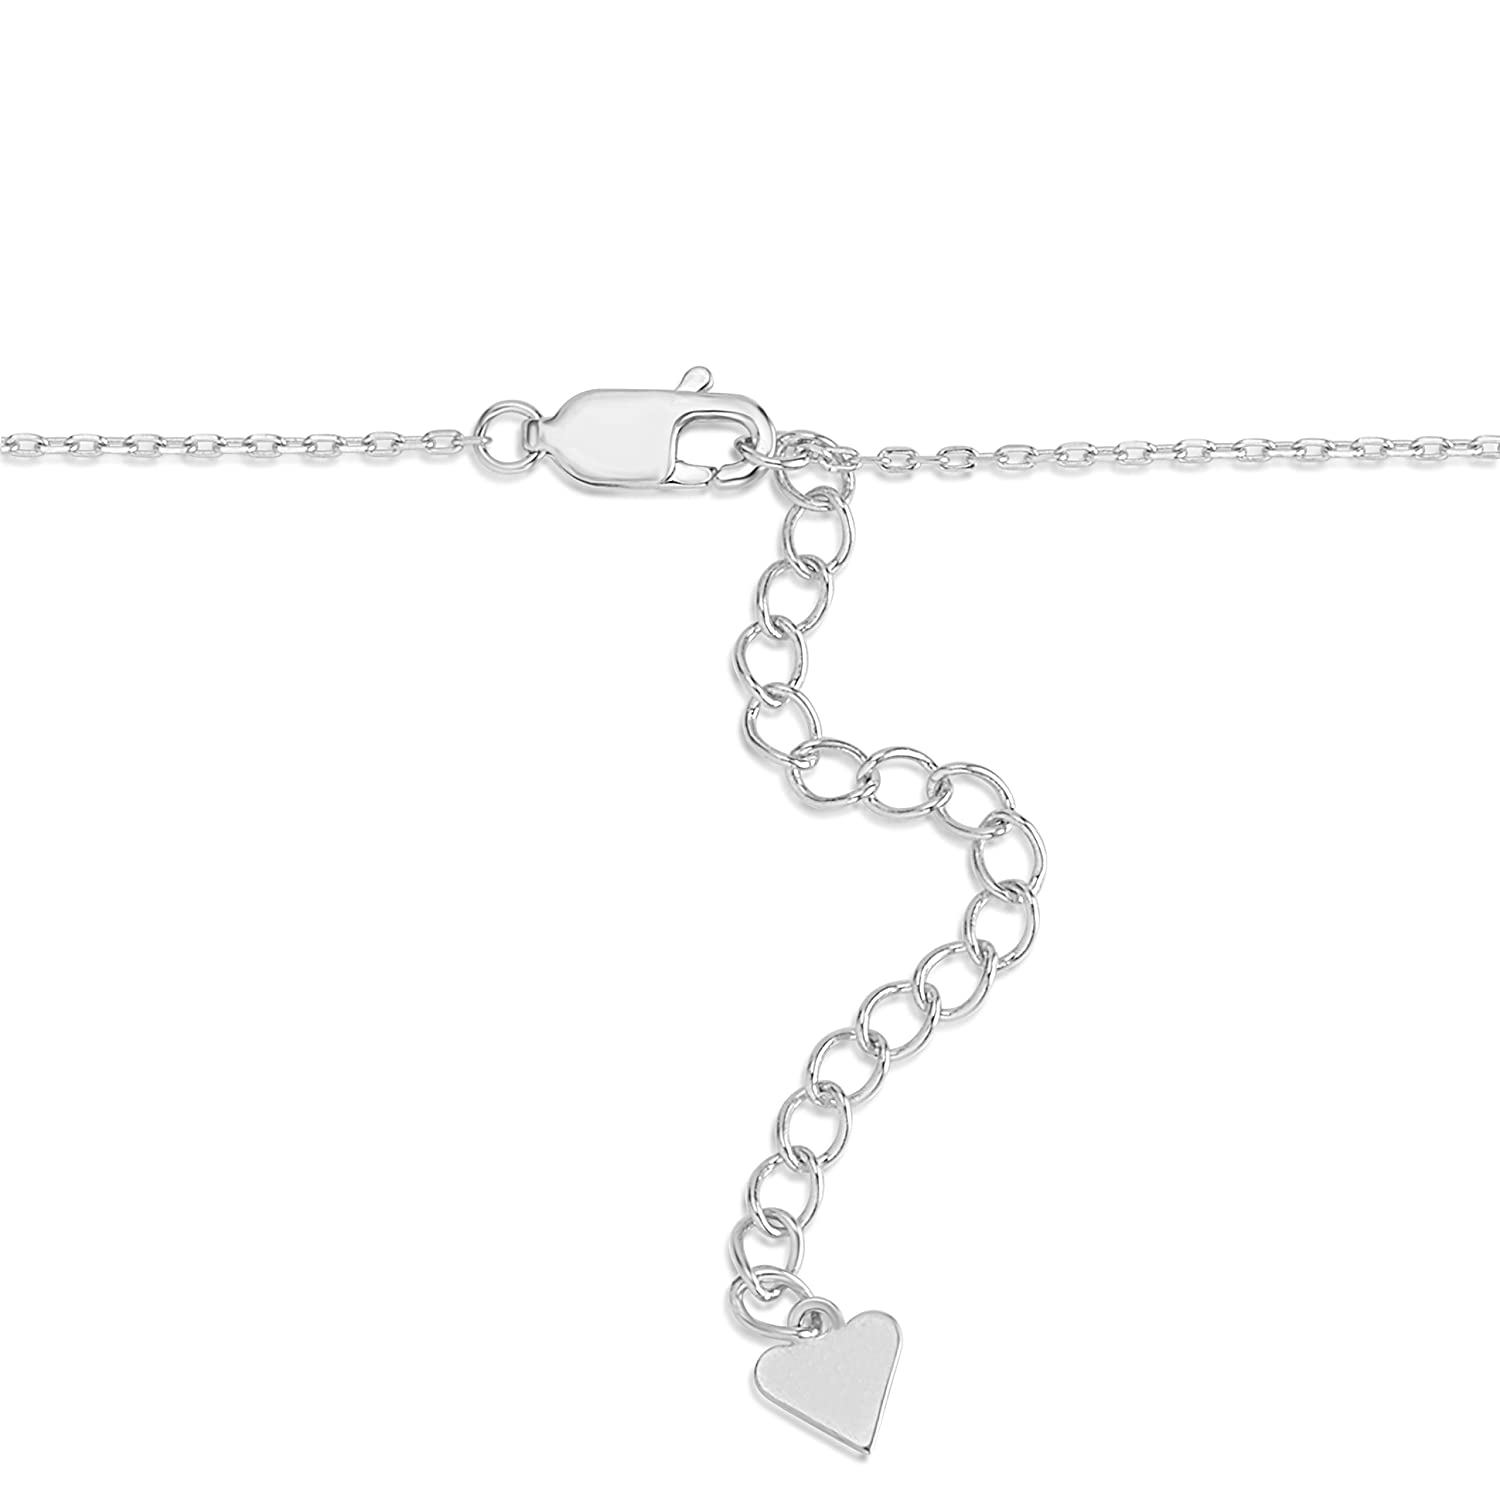 UNICORNJ Sterling Silver 925 Initial Bracelet with Pave CZ Letter 7 Italy